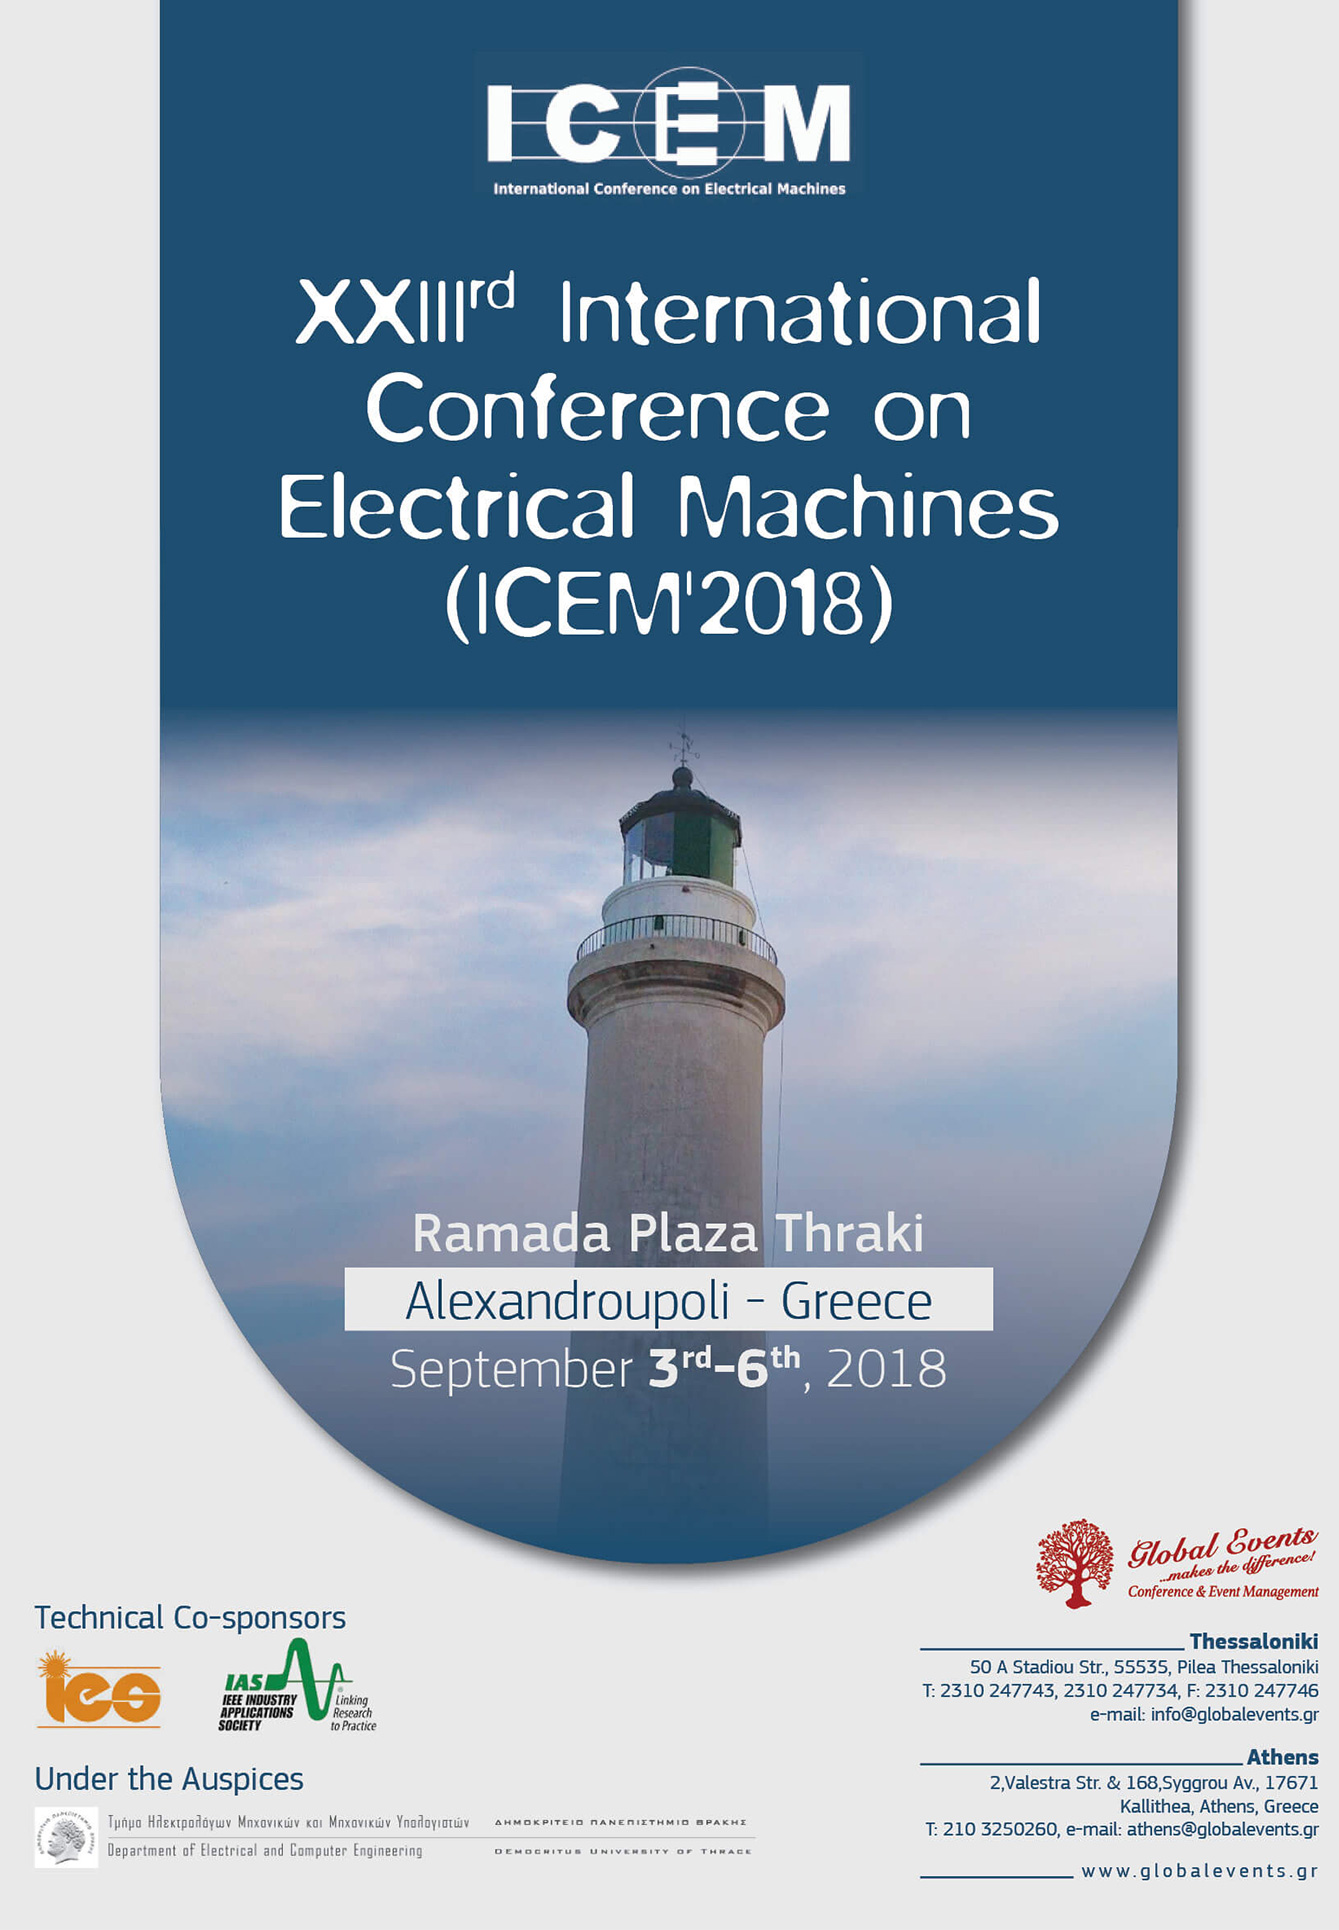 XXIIIrd International Conference on Electrical Machines